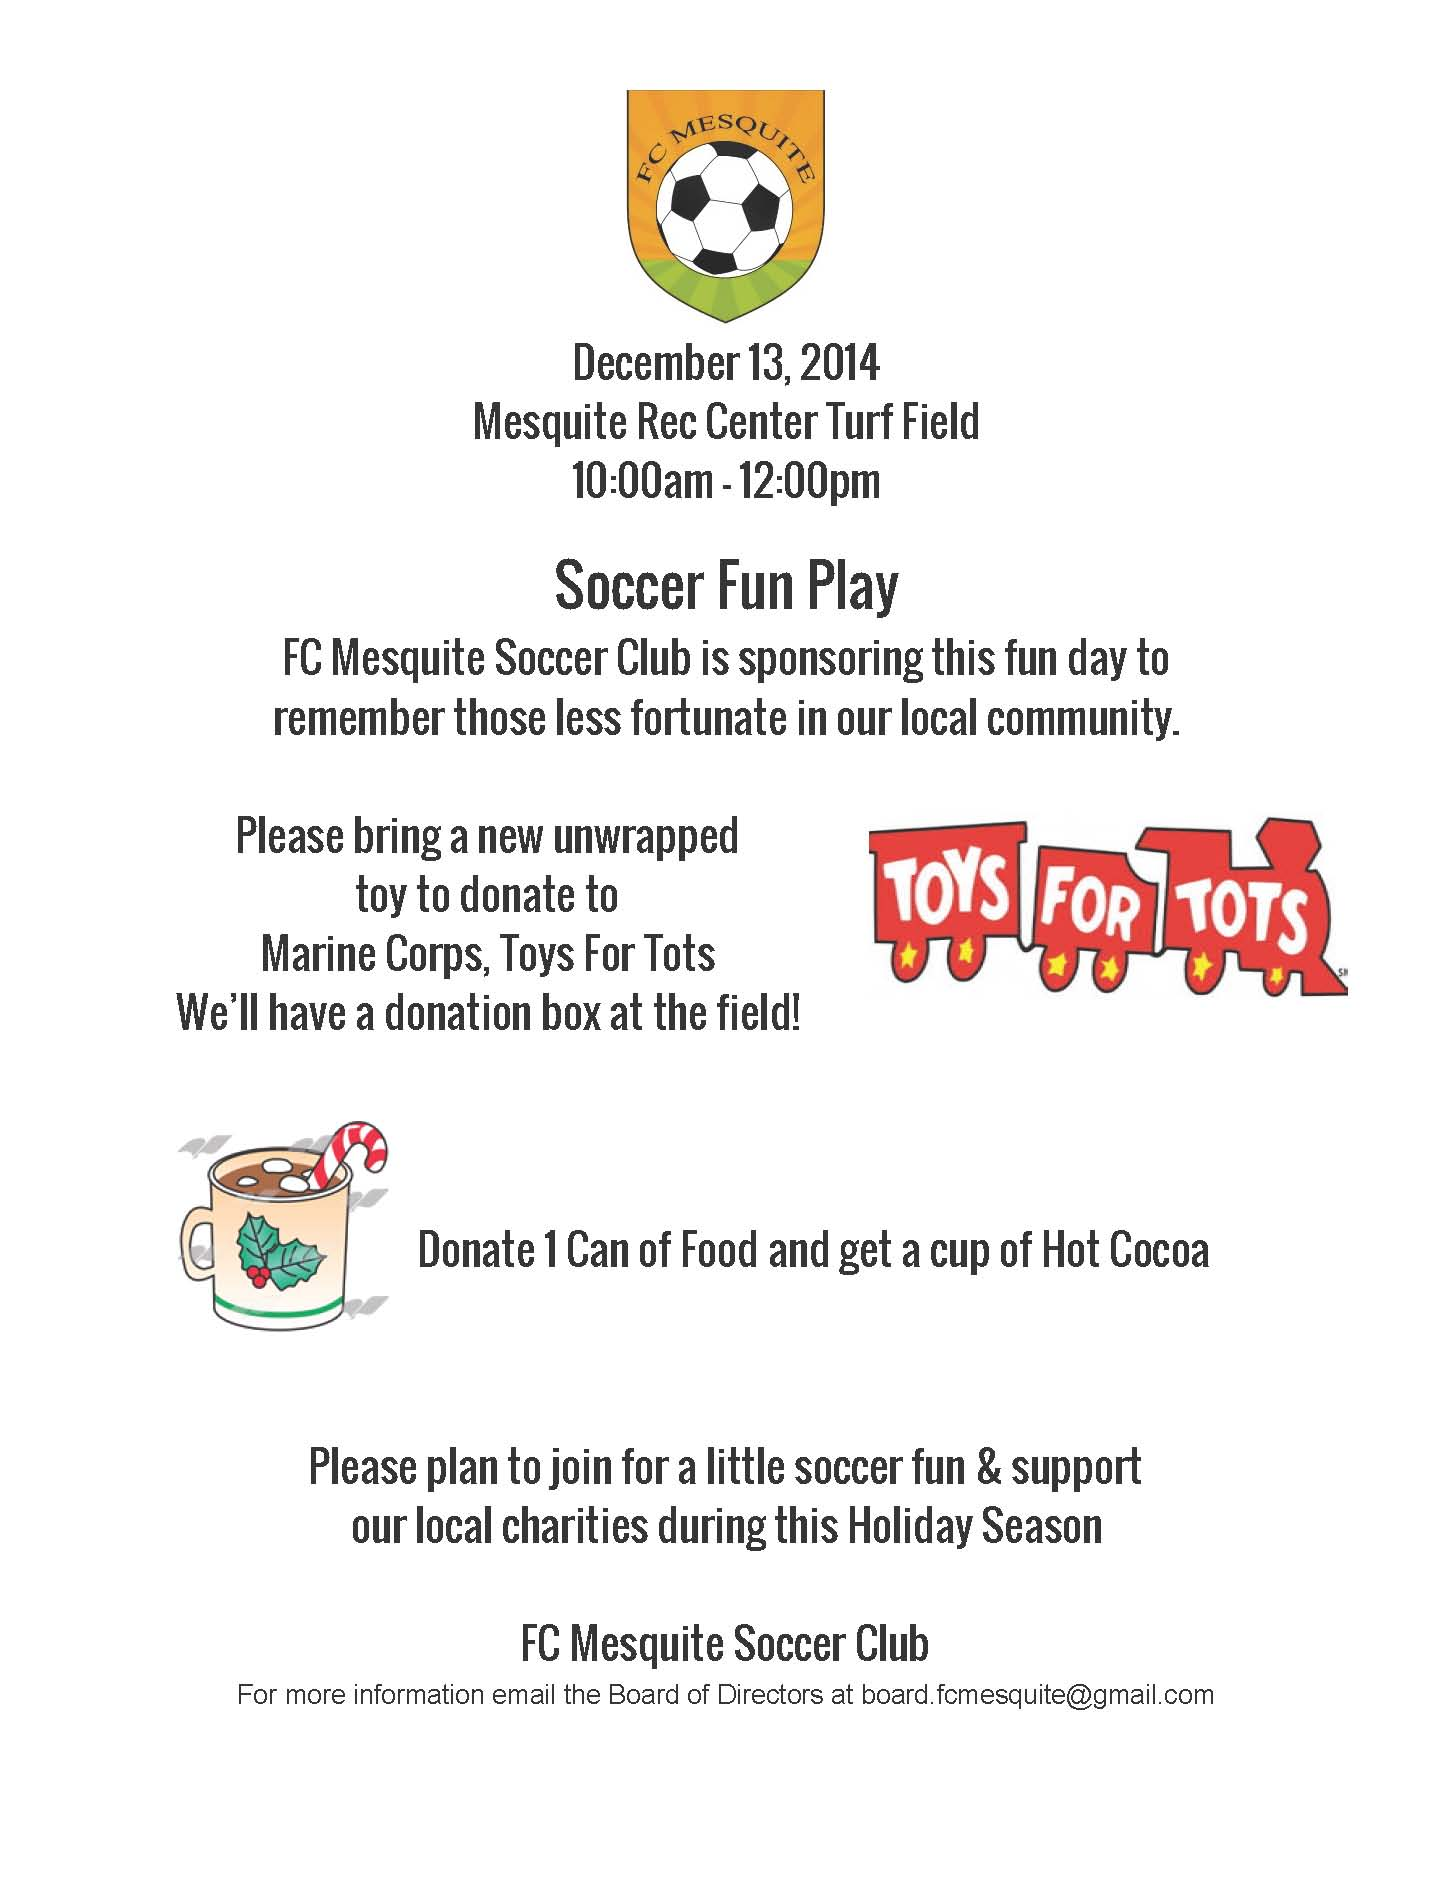 FC Mesquite Soccer to push for more toys for tots